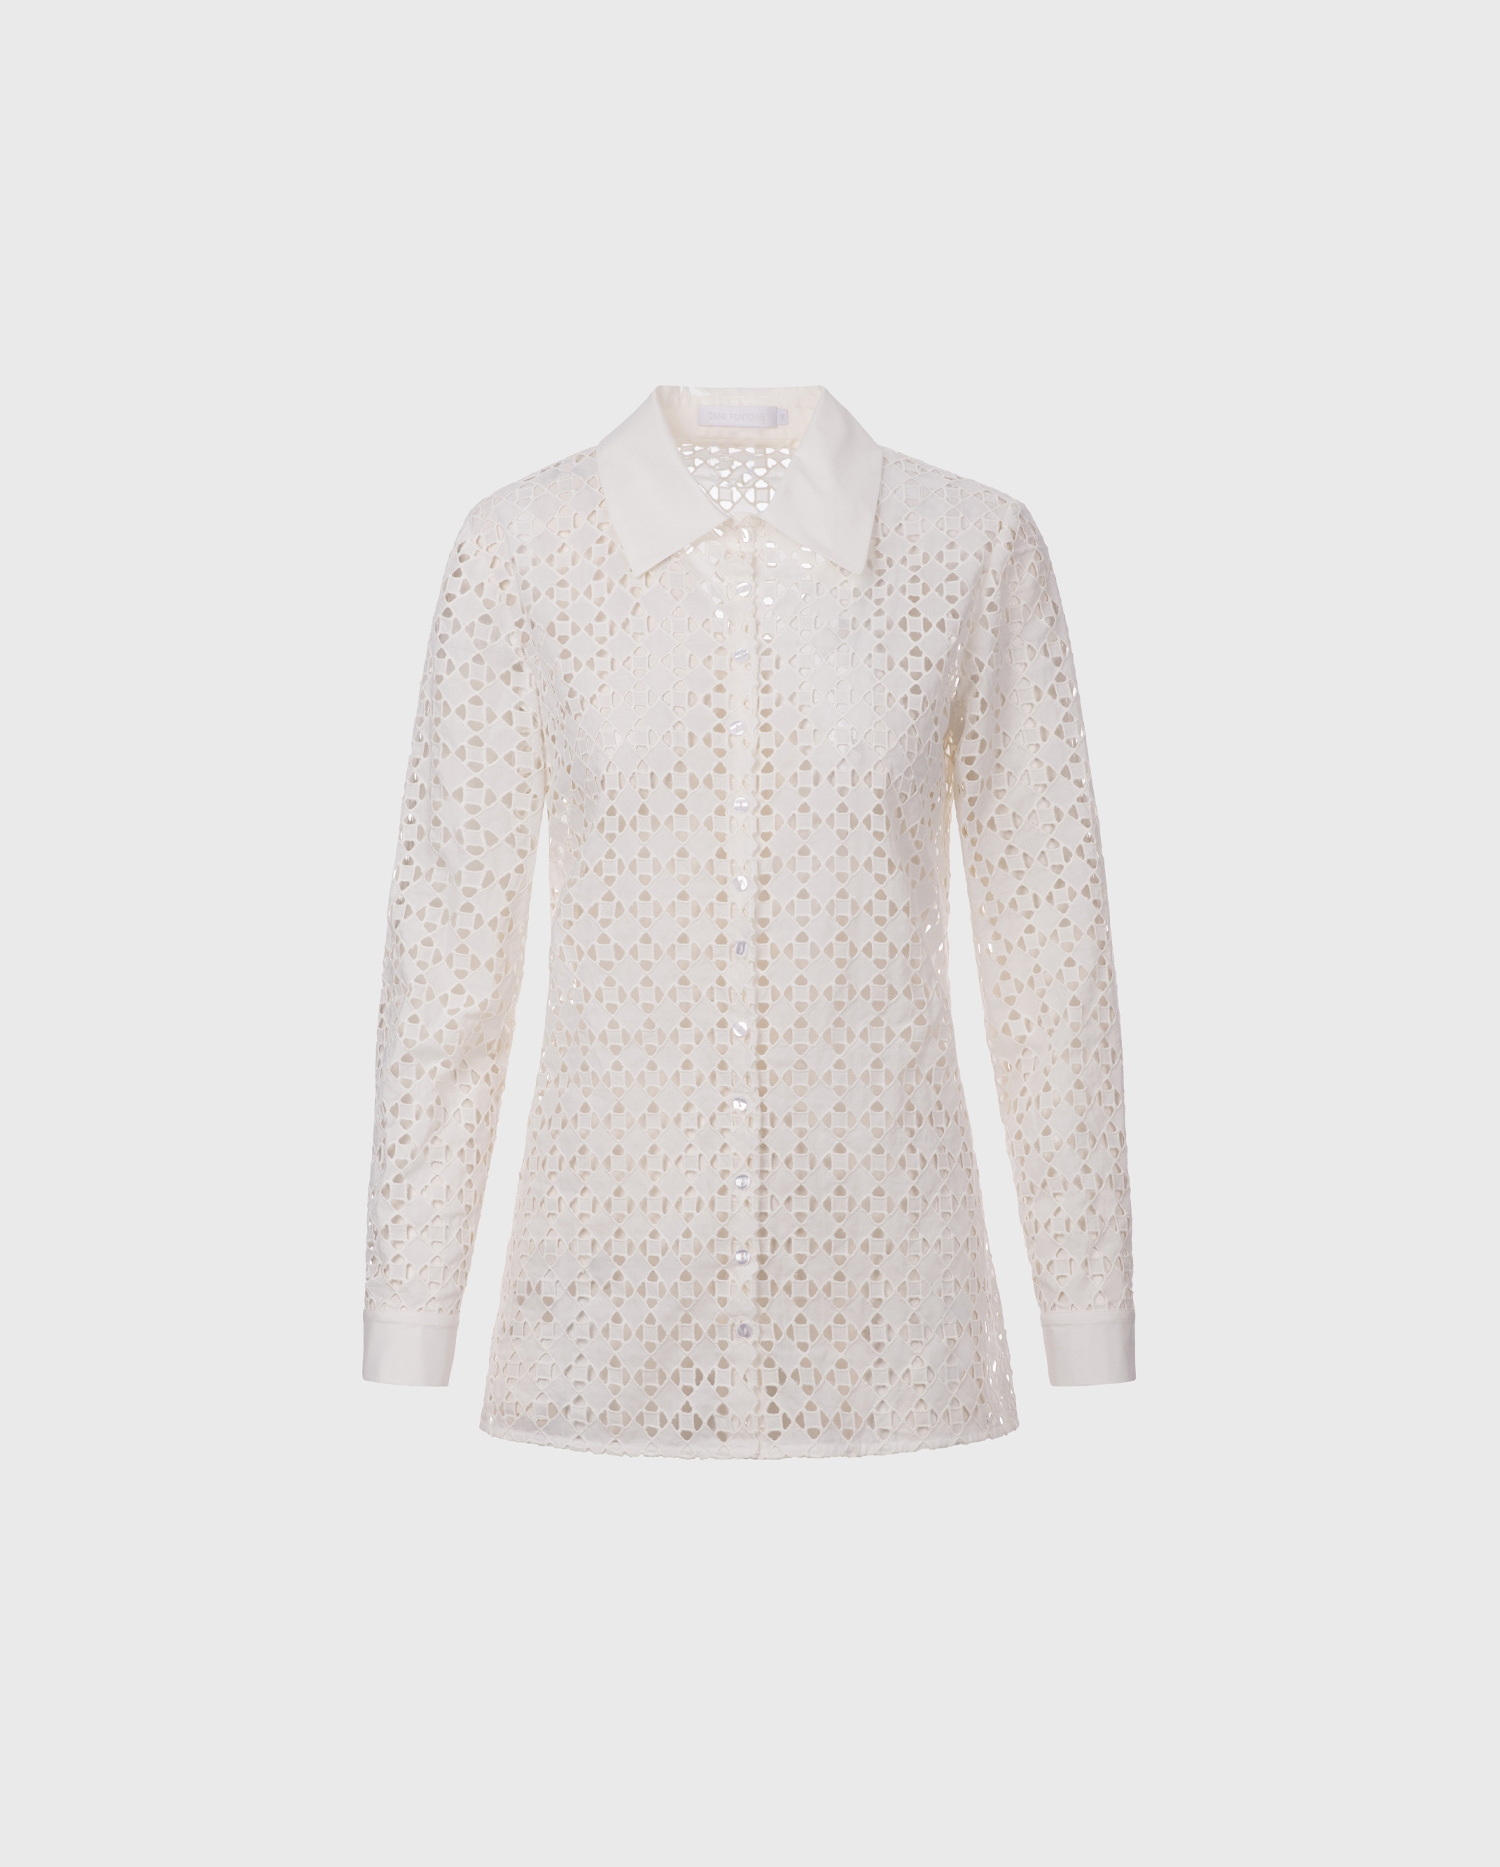 The CEFALU white eyelet embroidered shirt with poplin details is the perfect white shirt to add to your summer wardrobe.